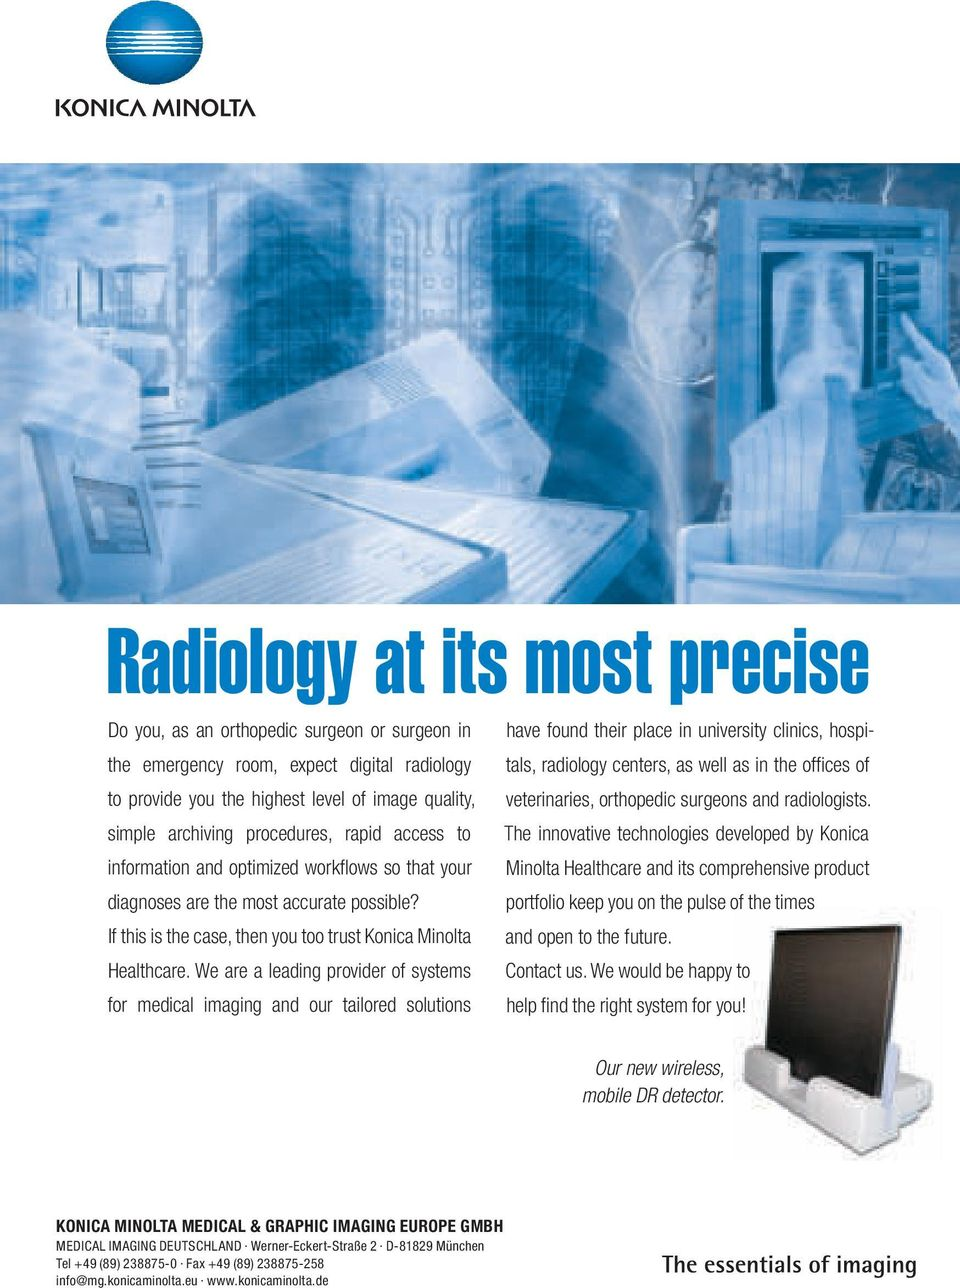 We are a leading provider of systems for medical imaging and our tailored solutions have found their place in university clinics, hospitals, radiology centers, as well as in the offices of